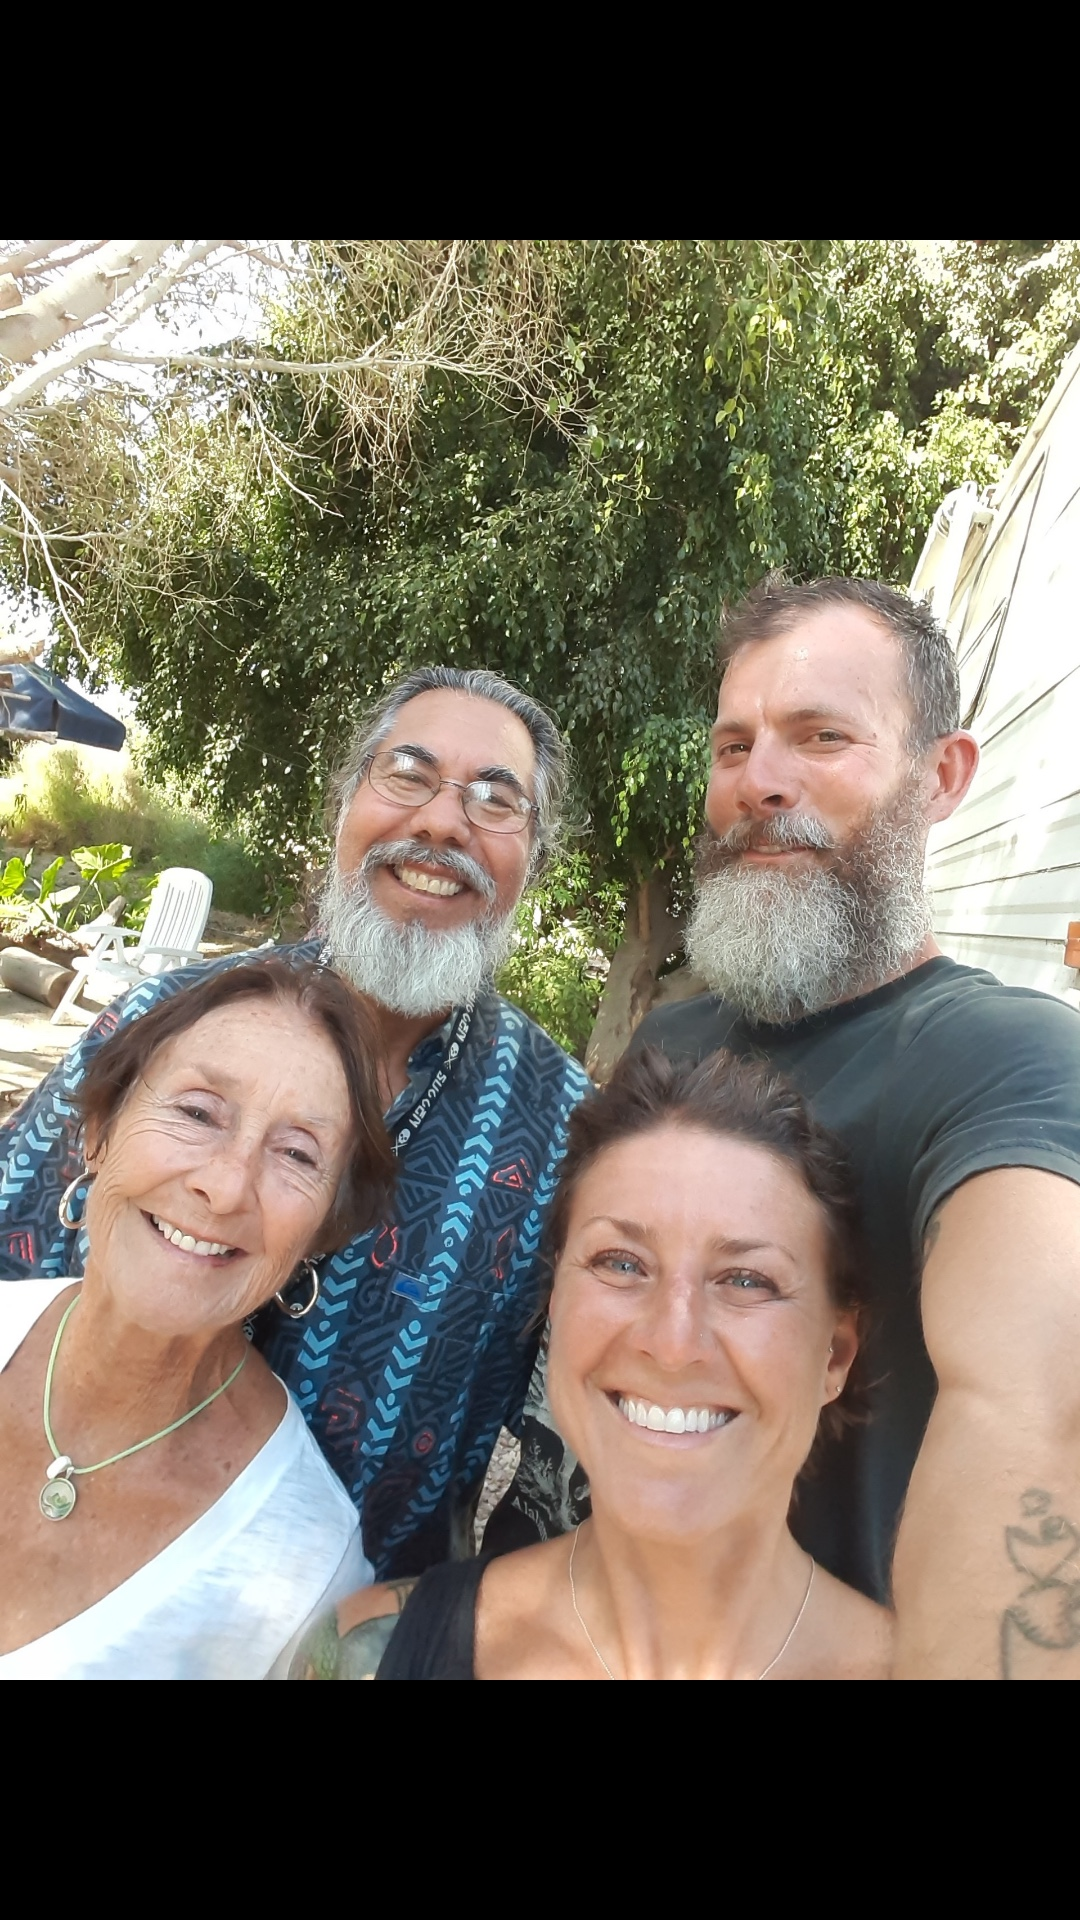 Our new friends from Oregon, Val and Claudia. They are retired Spanish teachers living in Grants Pass, OR. We met them in La Paz, and had a blast hanging out with them there and on the Pacific coast in the surfing town of El Pescadero.